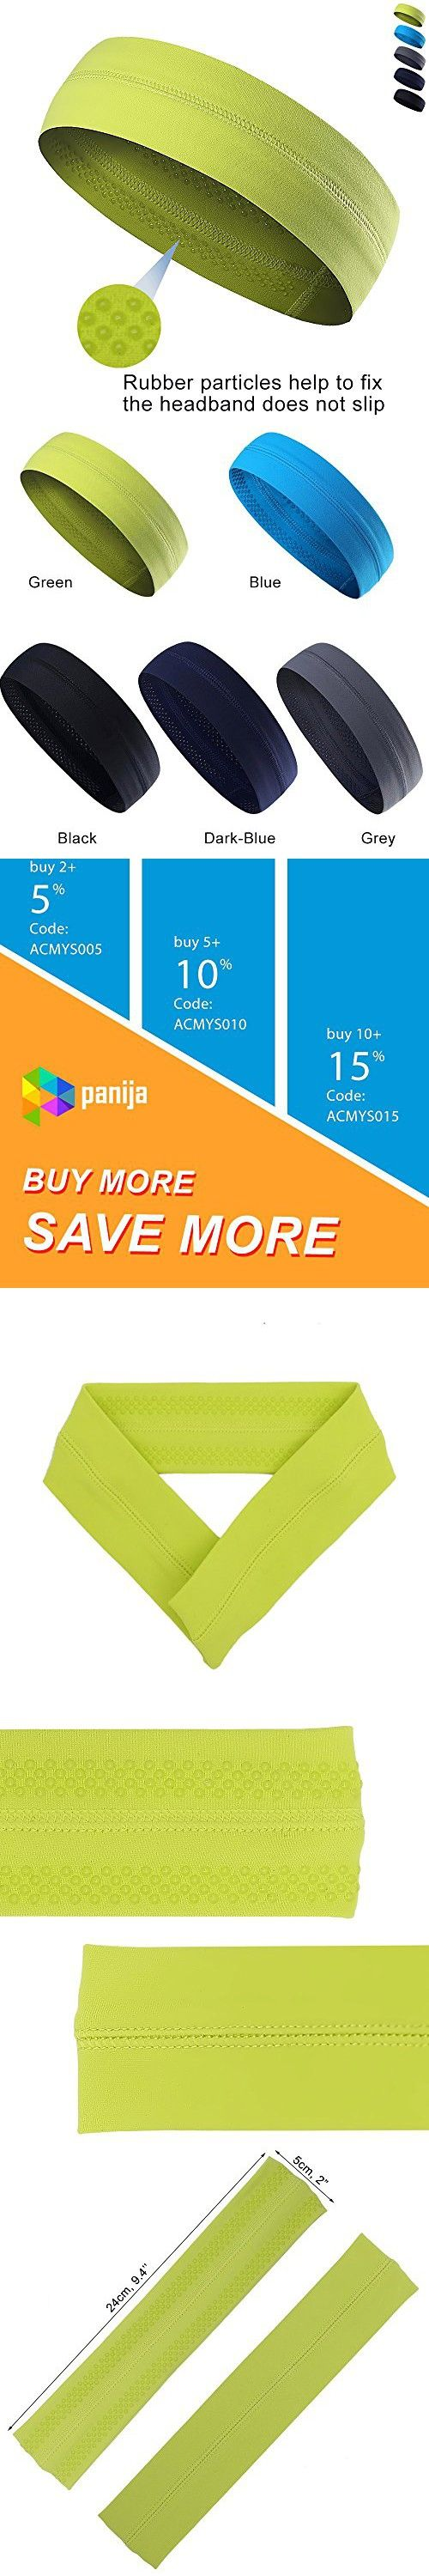 Cooling Headband That Can Absorb Sweat And Which Has A Very High Elasticity, Very Useful for Fitness, Gym, Yoga, Great For Women And Men (Green)